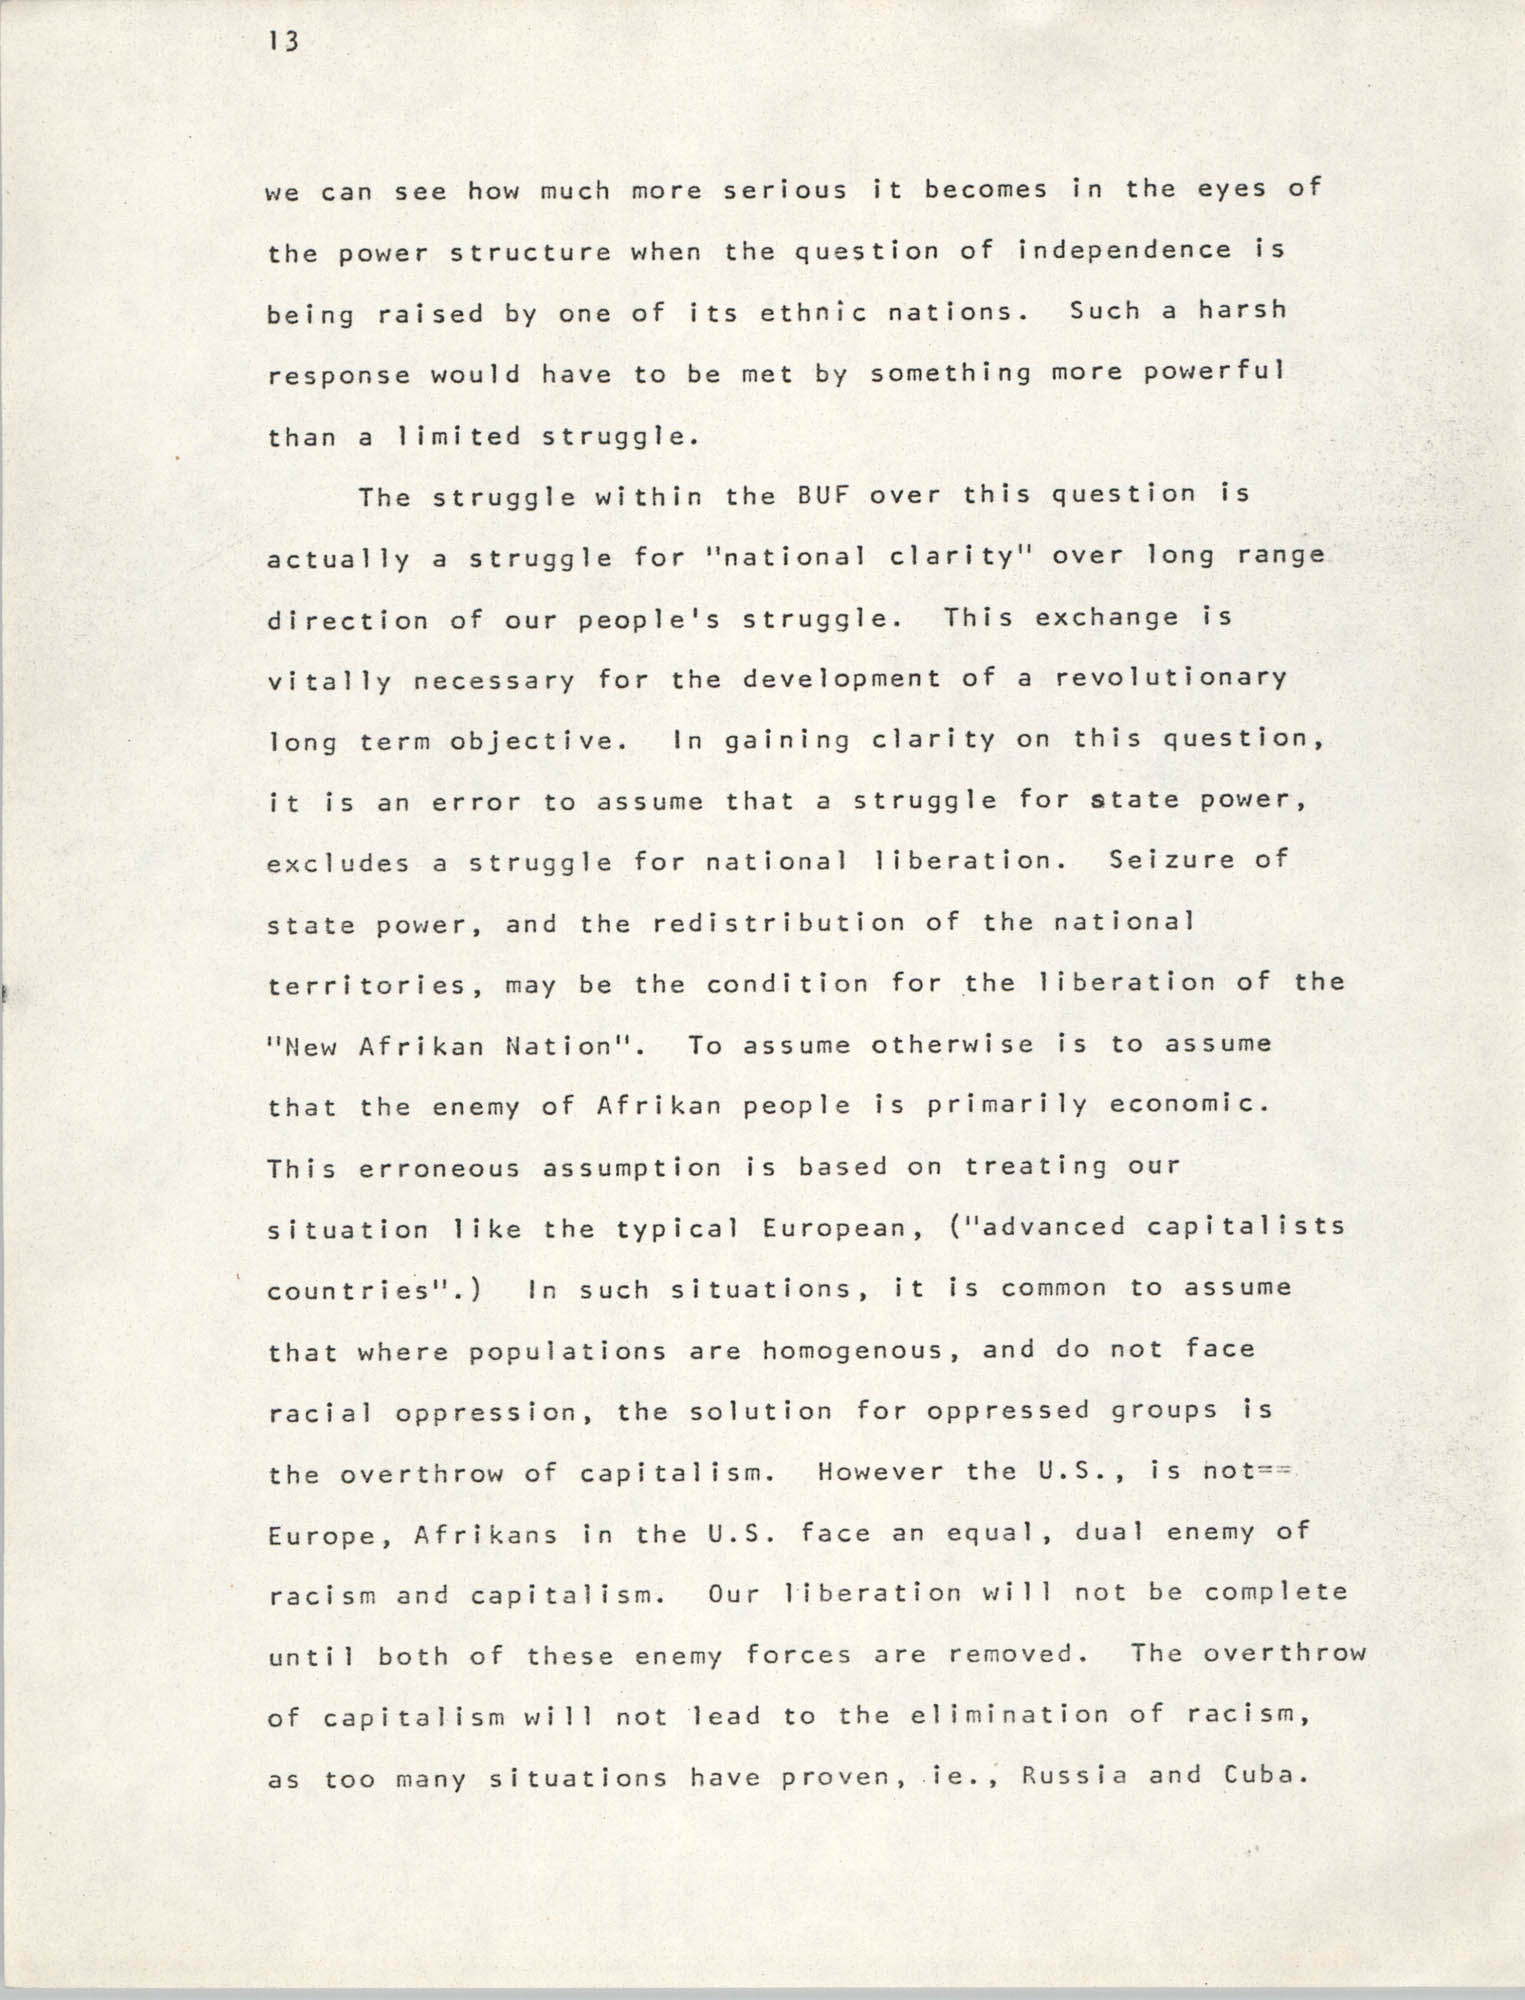 Pan-African Committee of the Black United Front, Page 13